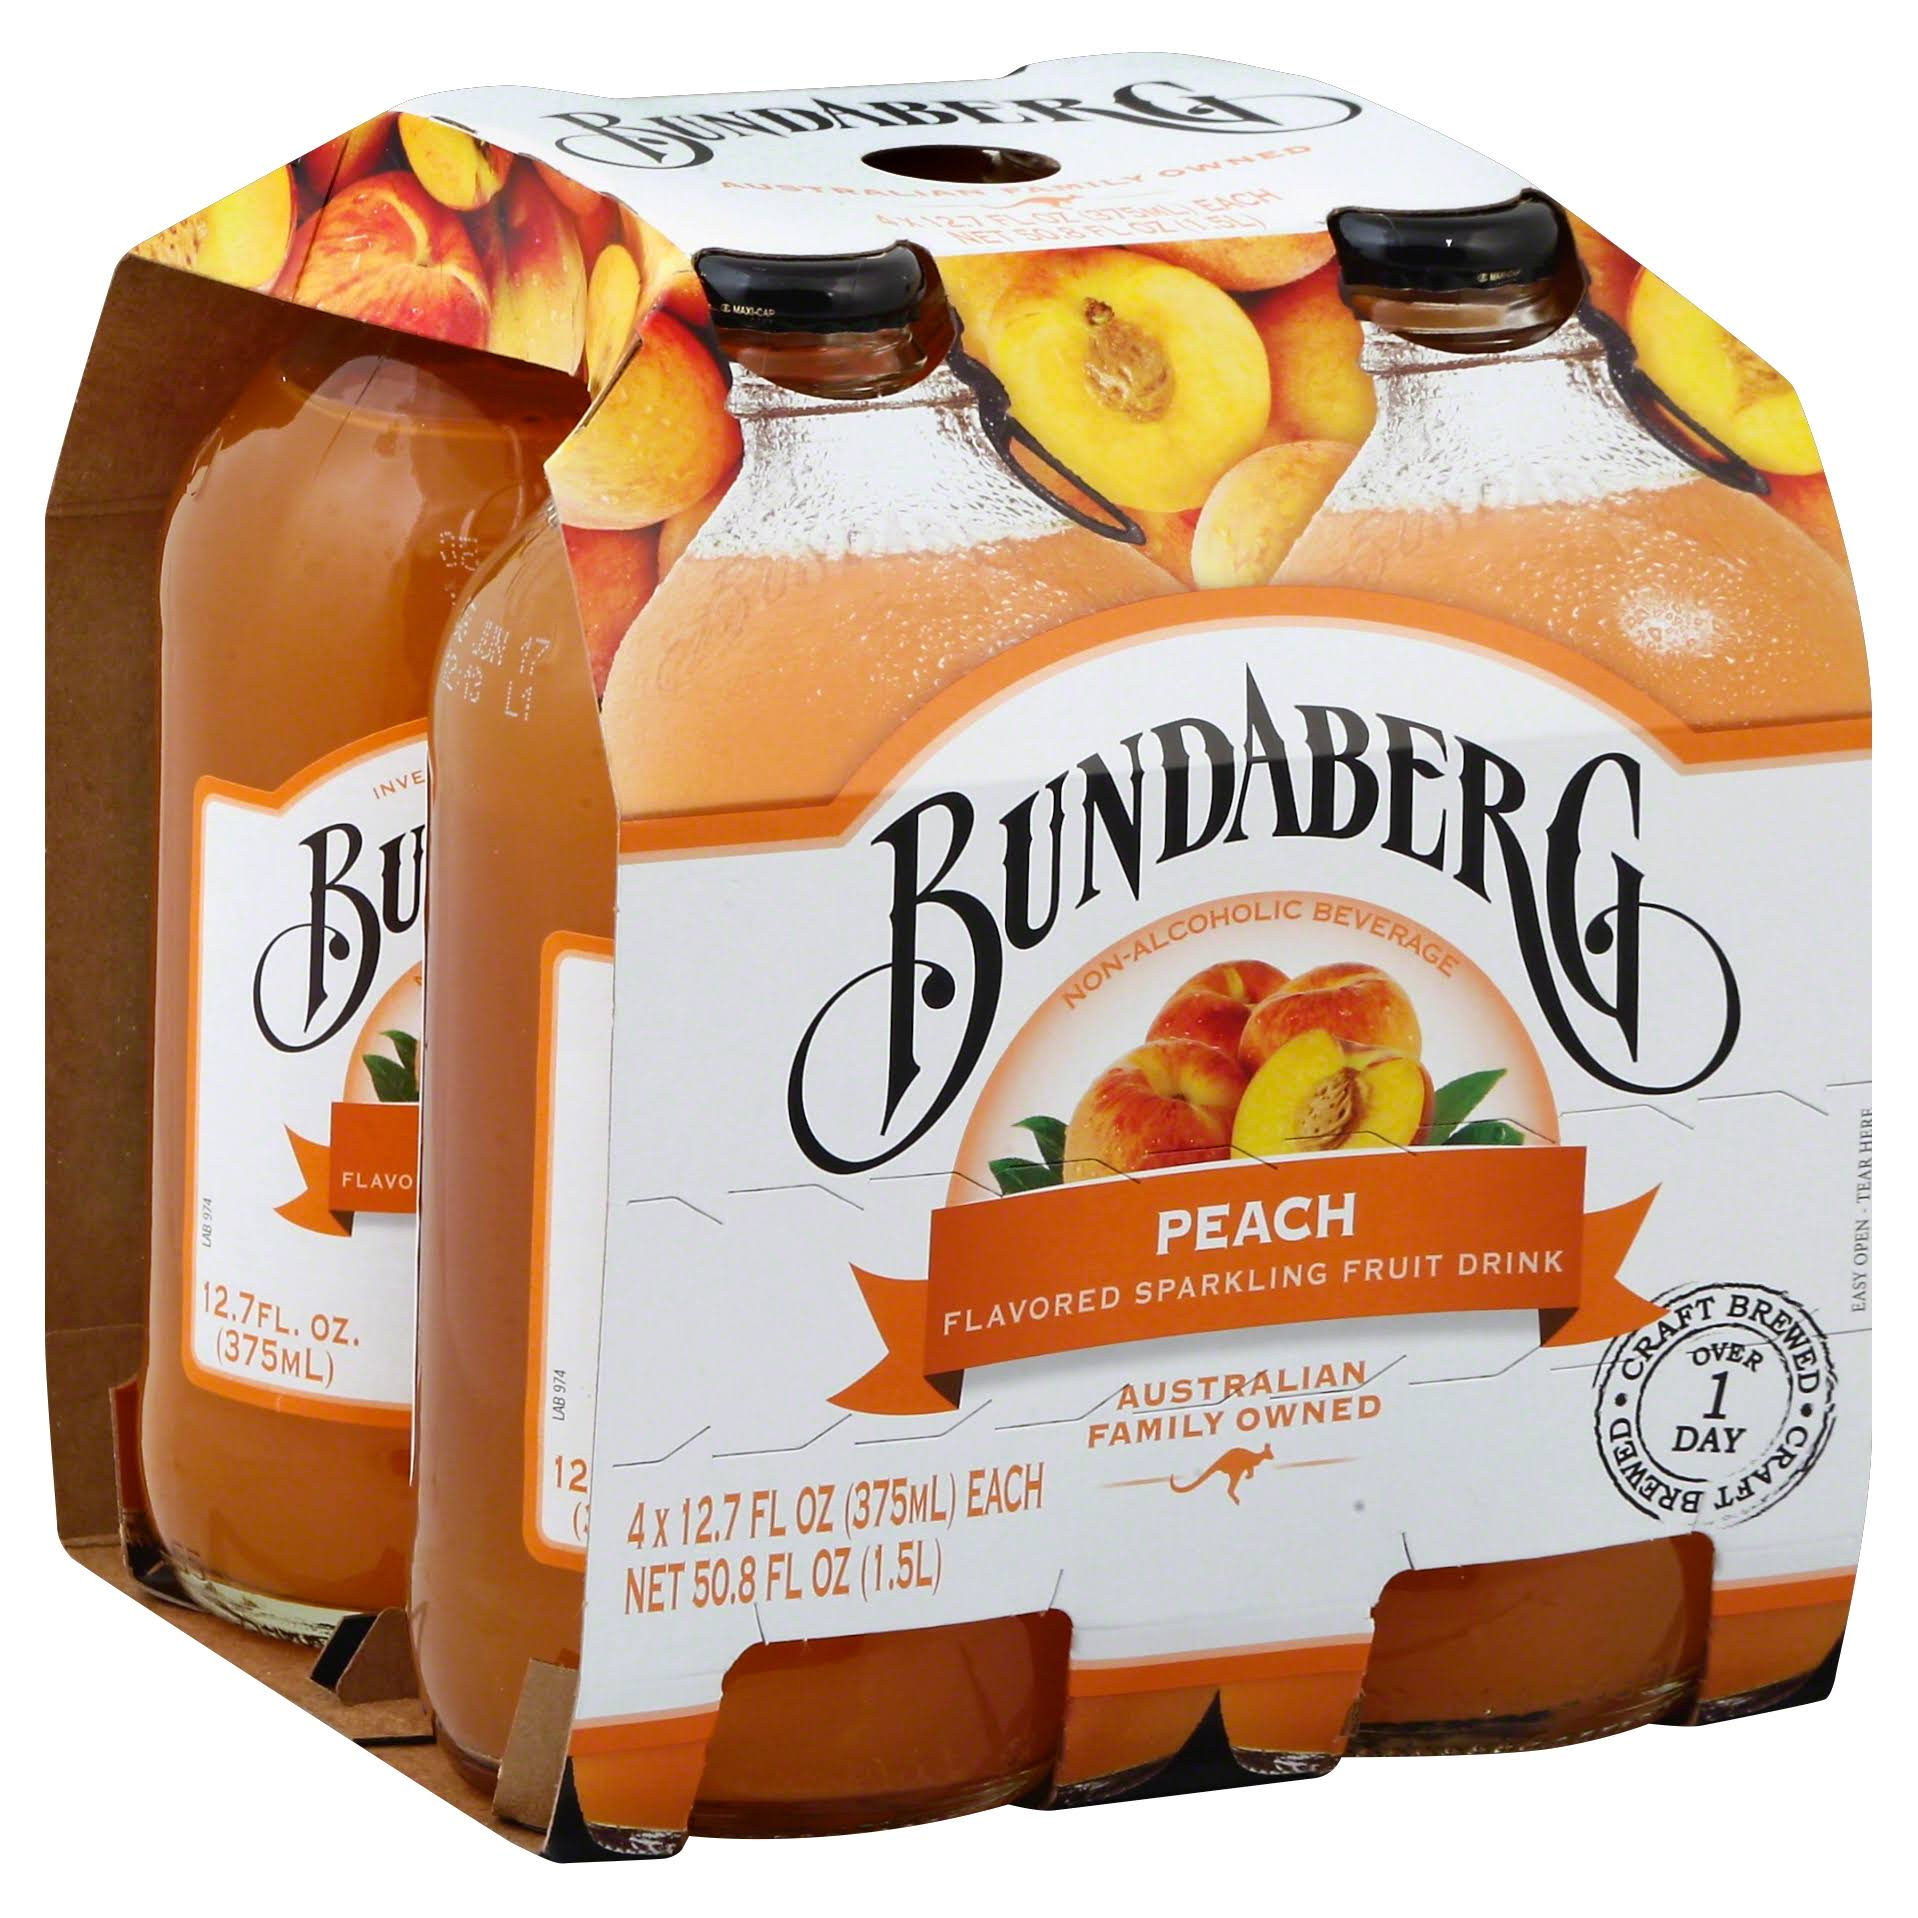 Bundaberg Flavored Sparkling Fruit Drink, Peach - 4 pack, 12.7 fl oz each